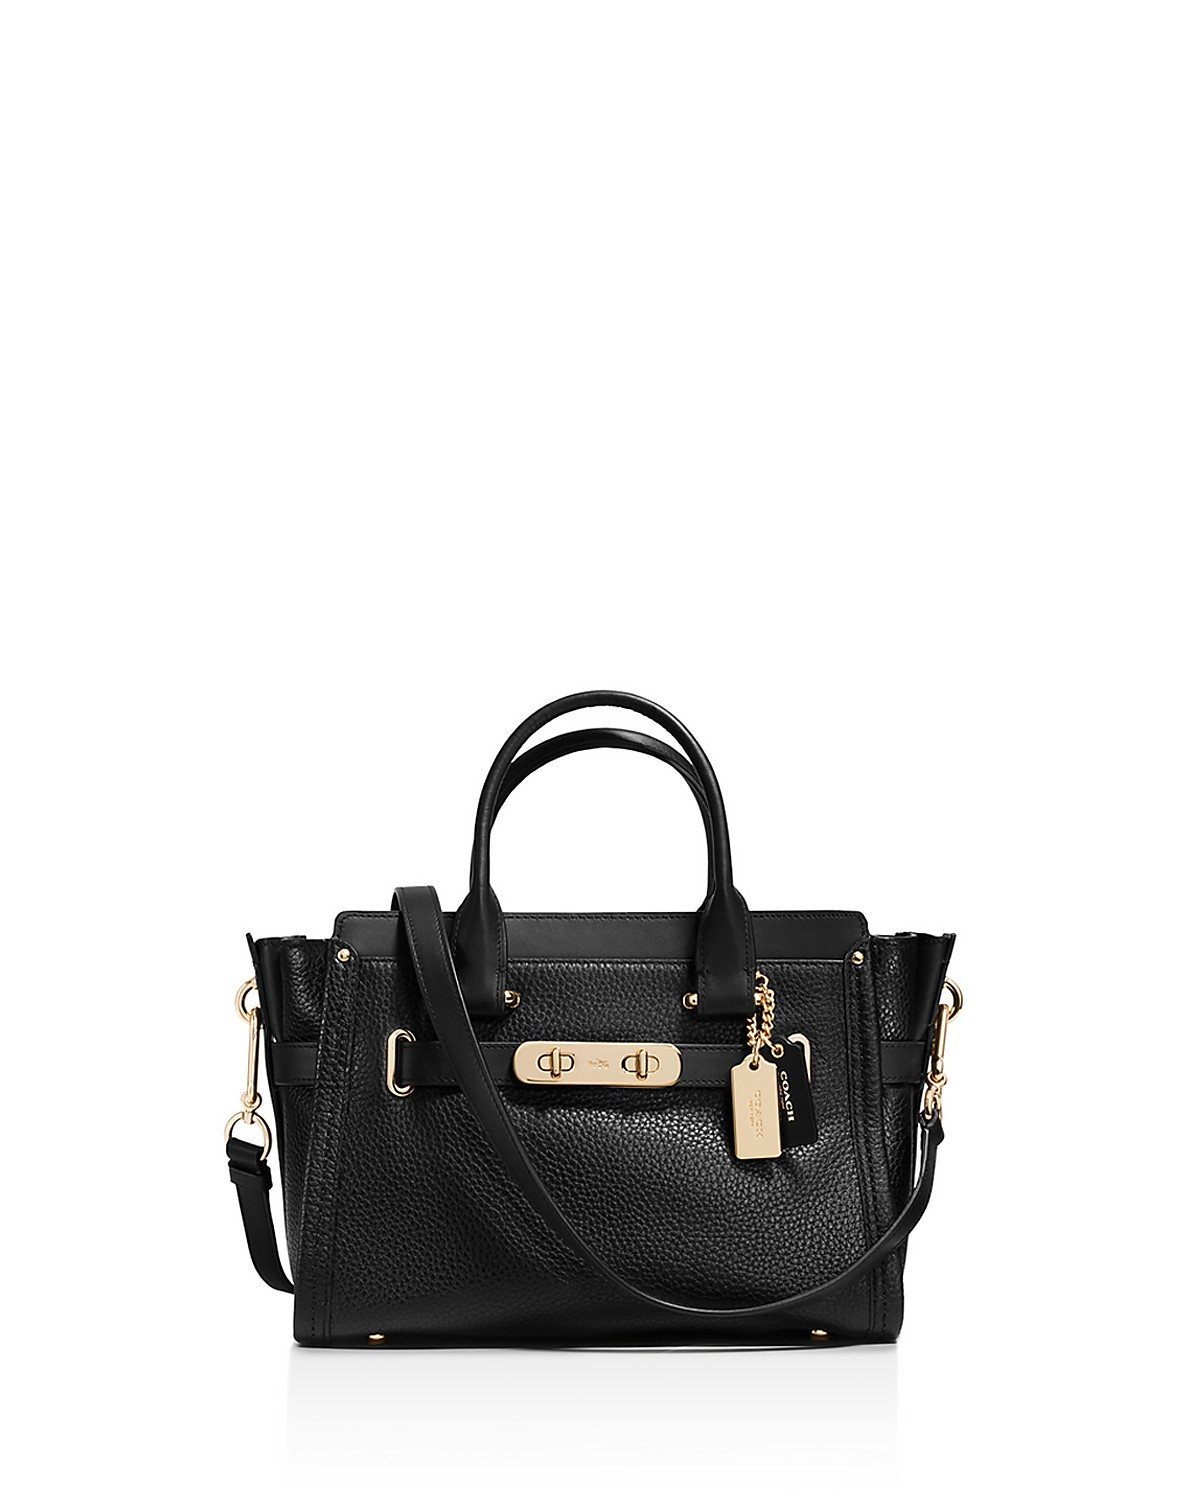 Swagger 27 Small Satchel in Pebble Leather